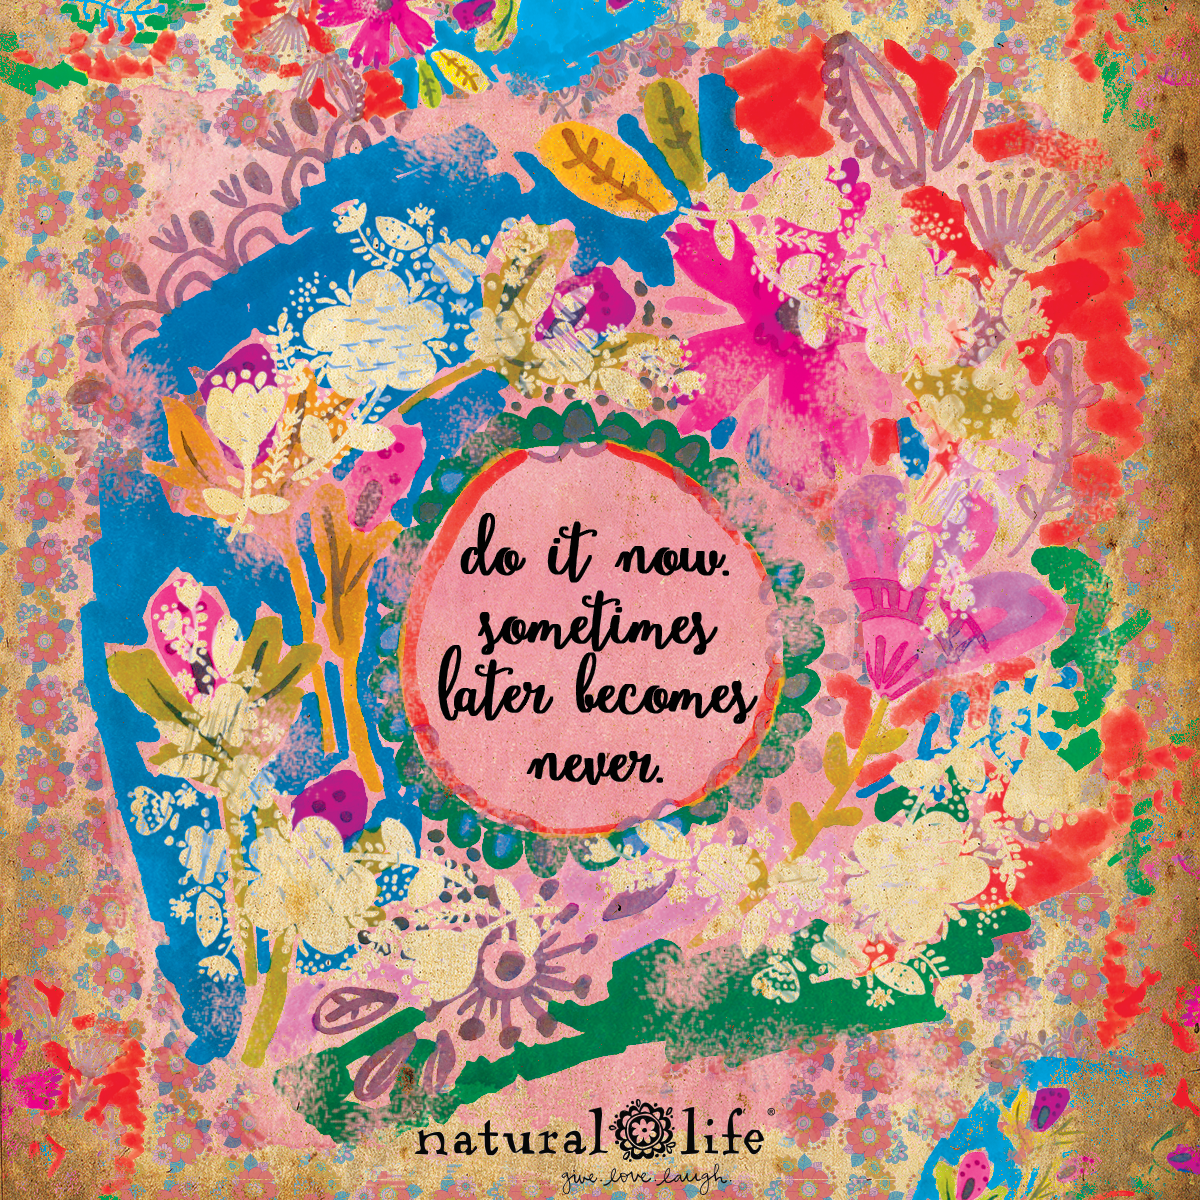 Inspirational Quotes About Life And Nature: Stay Persistant! Www.naturallife.com